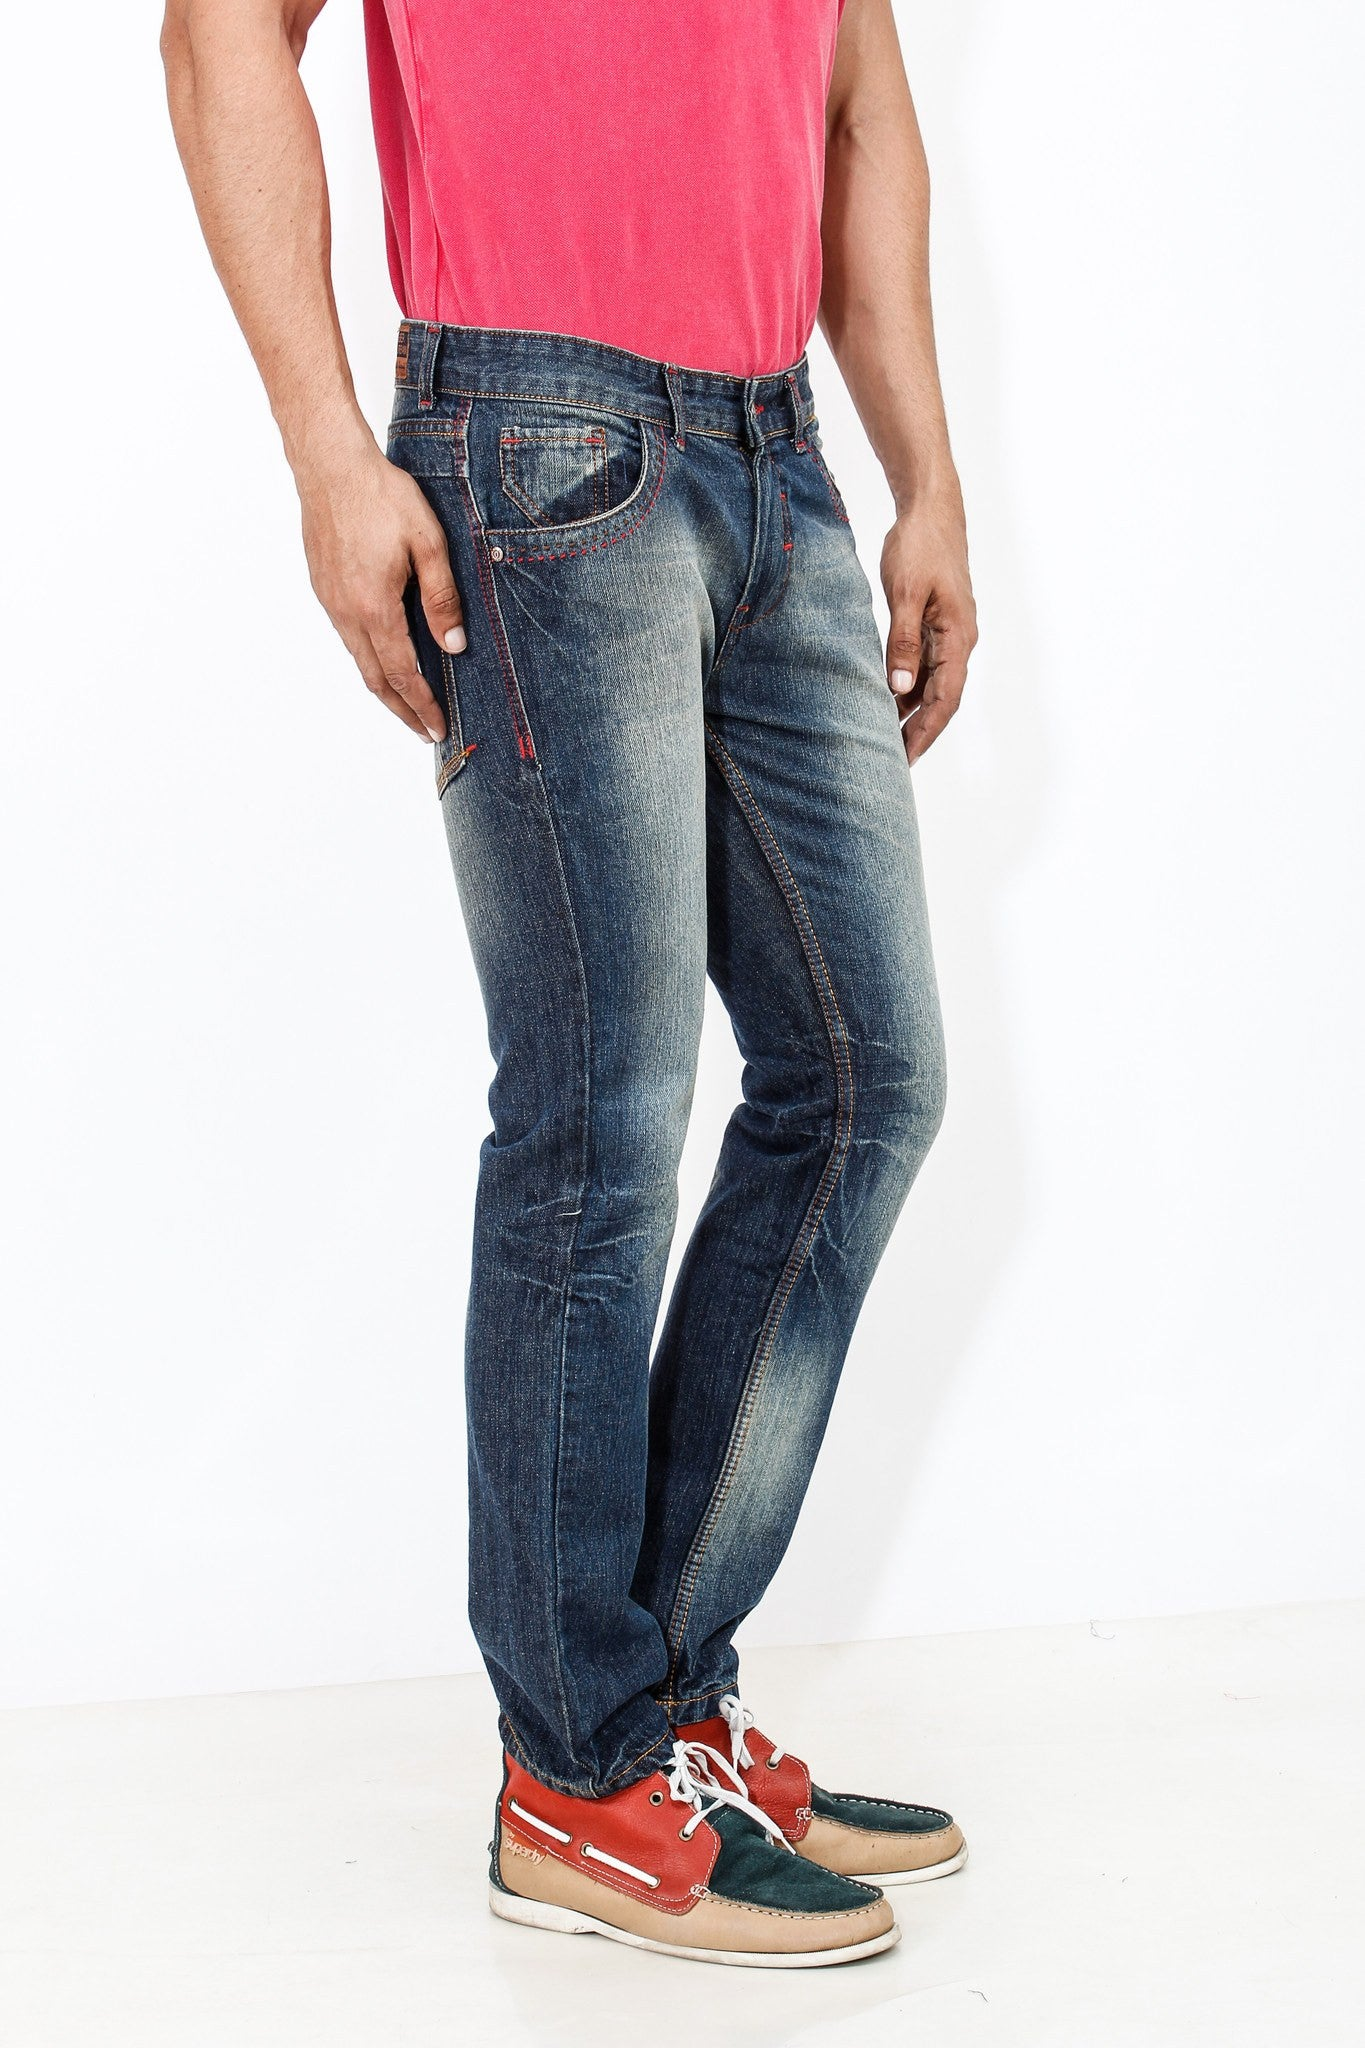 Dimgray Shade Cotton Elastene Red Thread Denim right side view